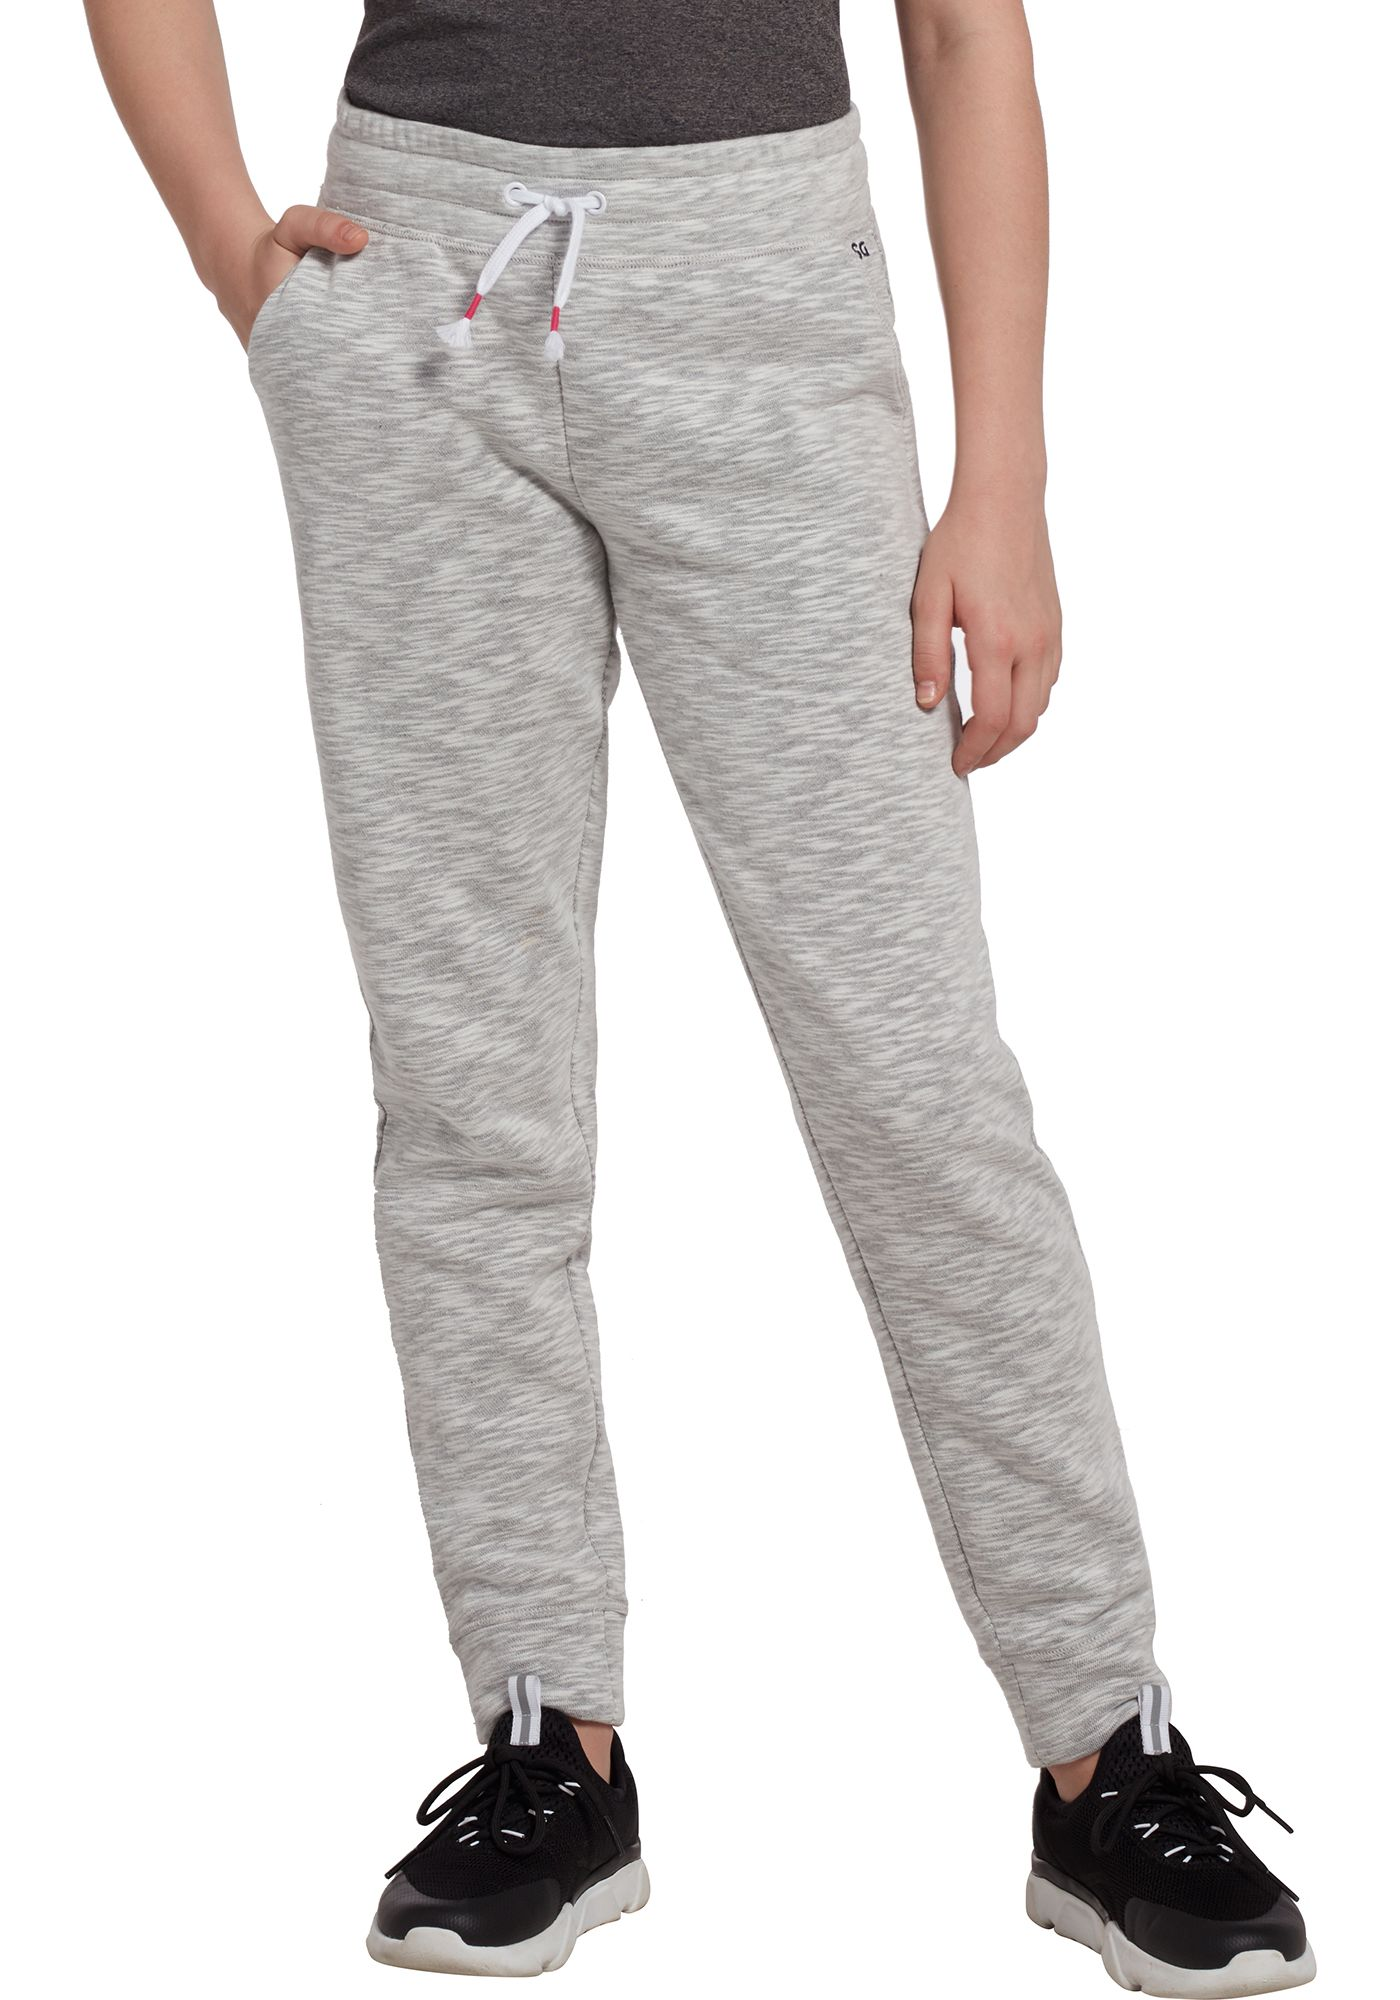 DSG Girls' Everyday Cotton Fleece Cotton Fleece Jogger Pants